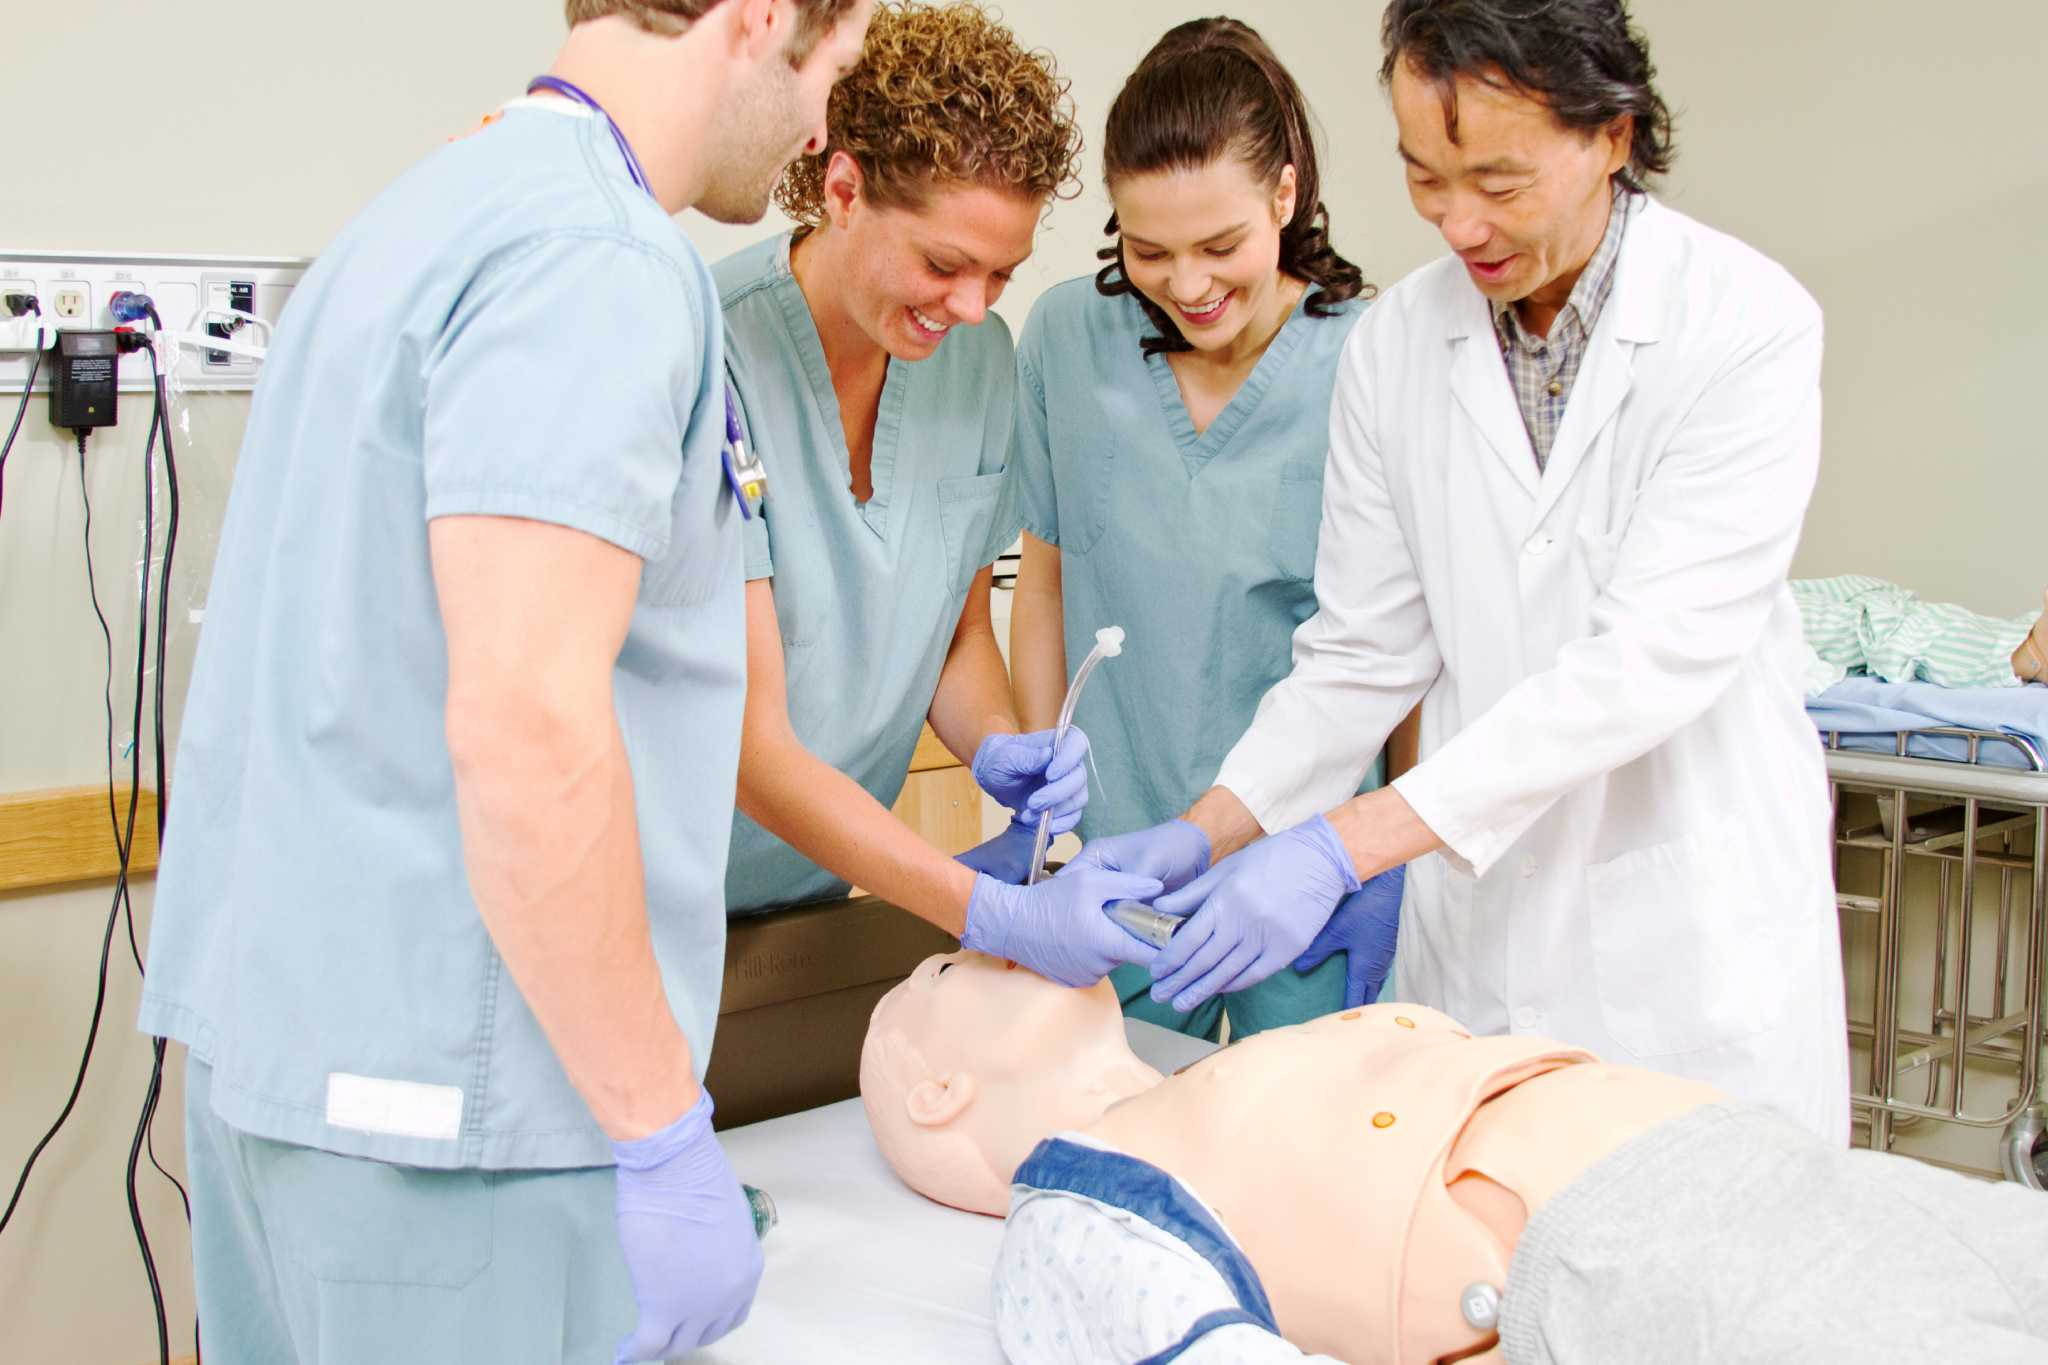 workforce training: Local health care education meets ...